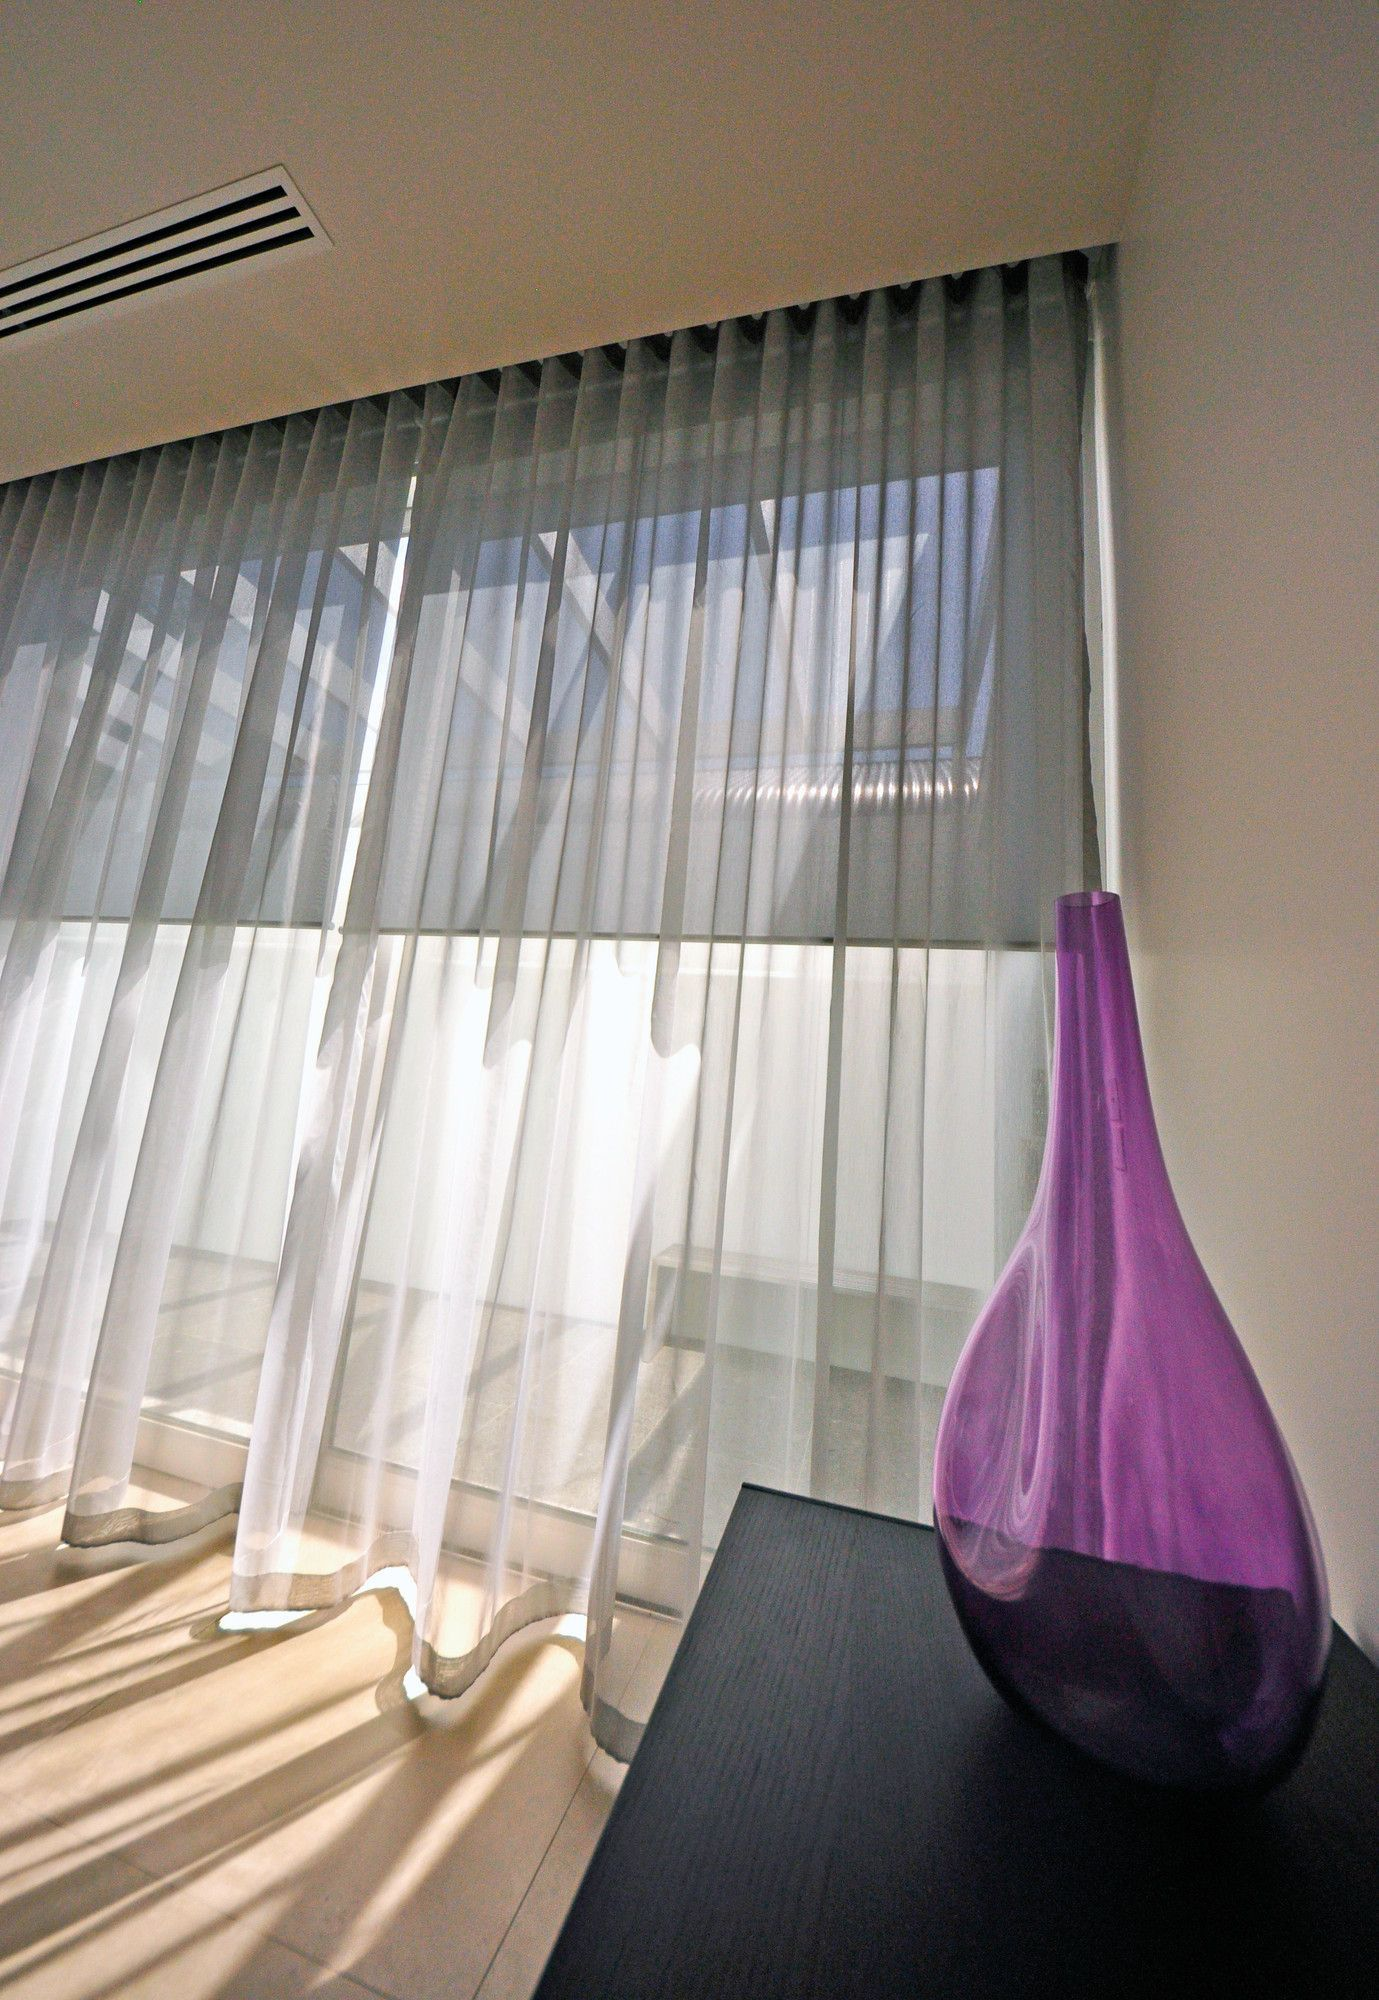 Wave curtains in the breeze with roller blinds behind picture from